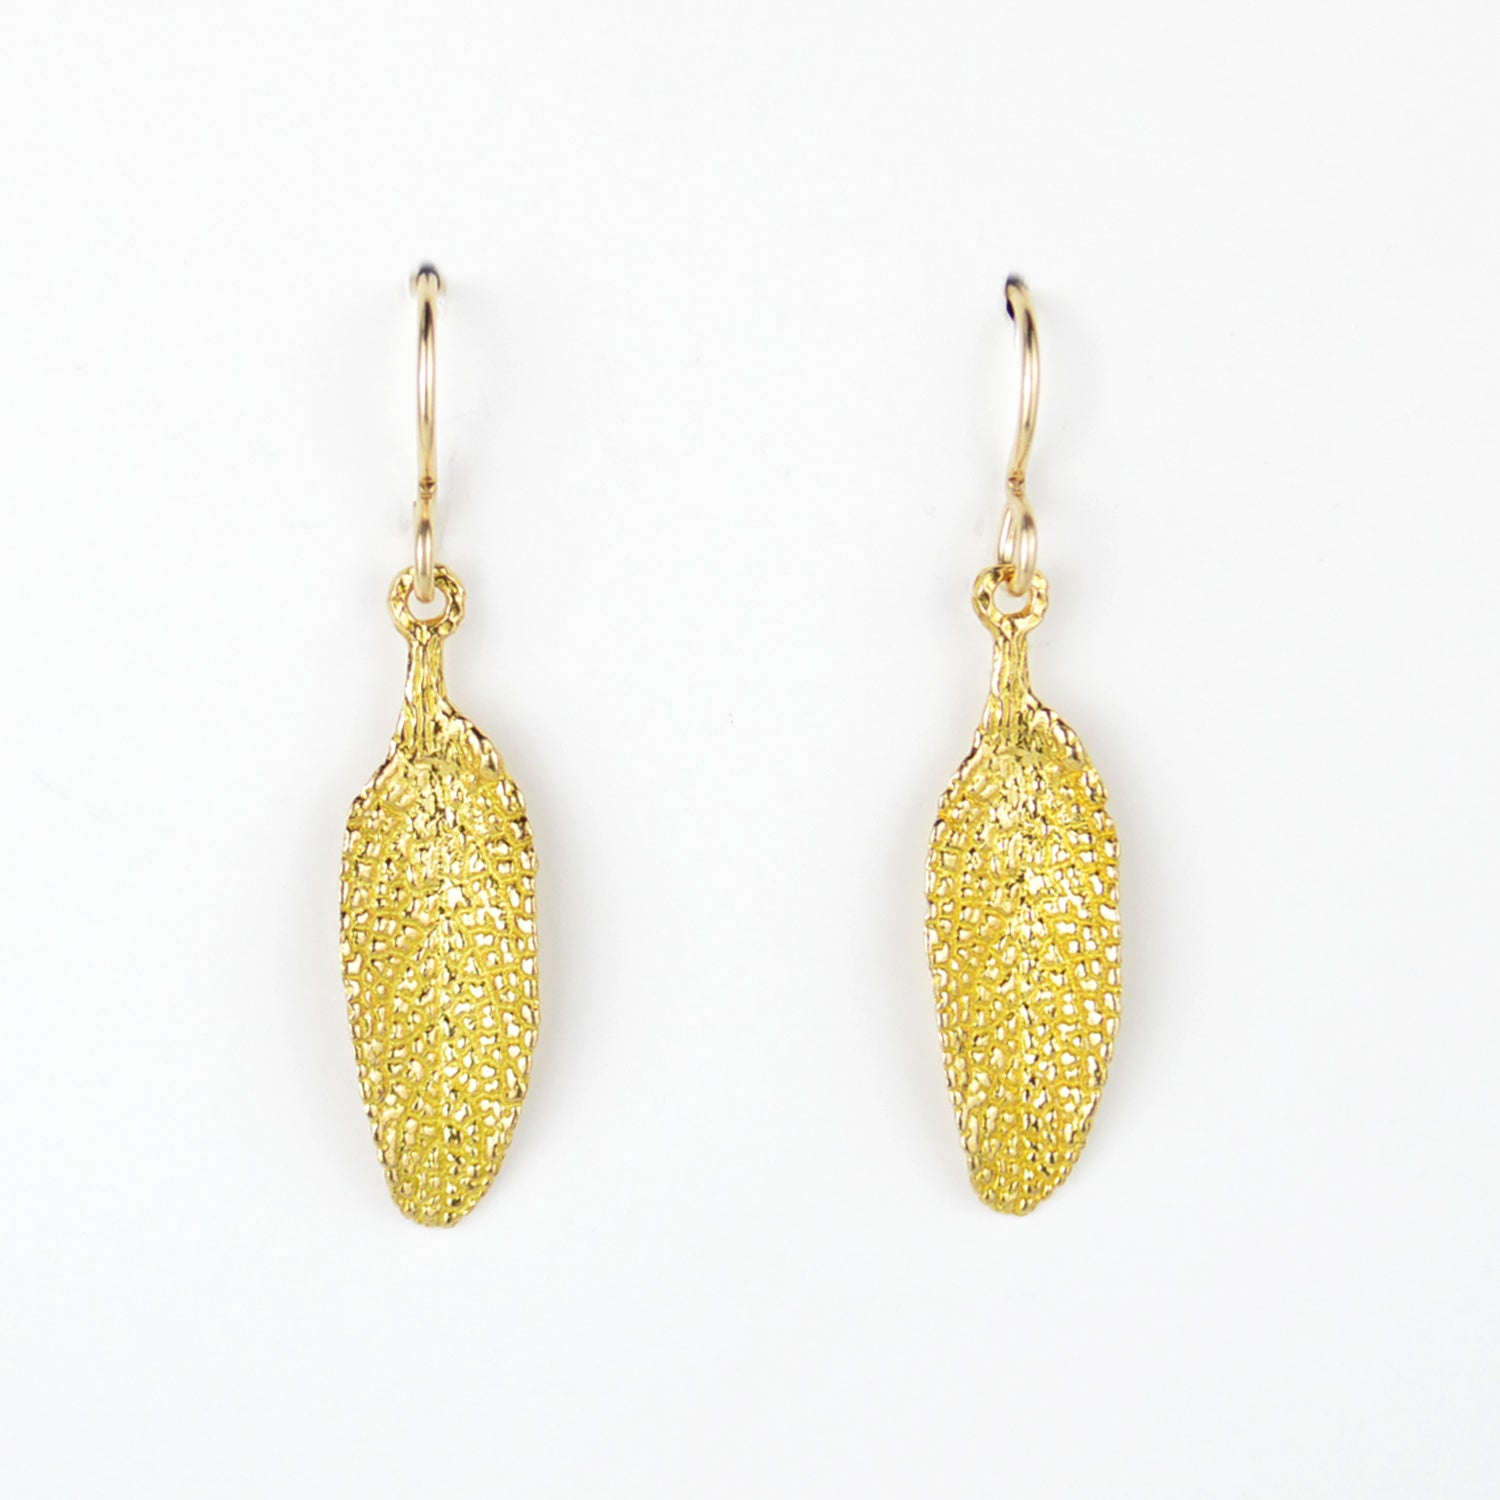 golden sage leaf earrings on plain white background. incredible detail